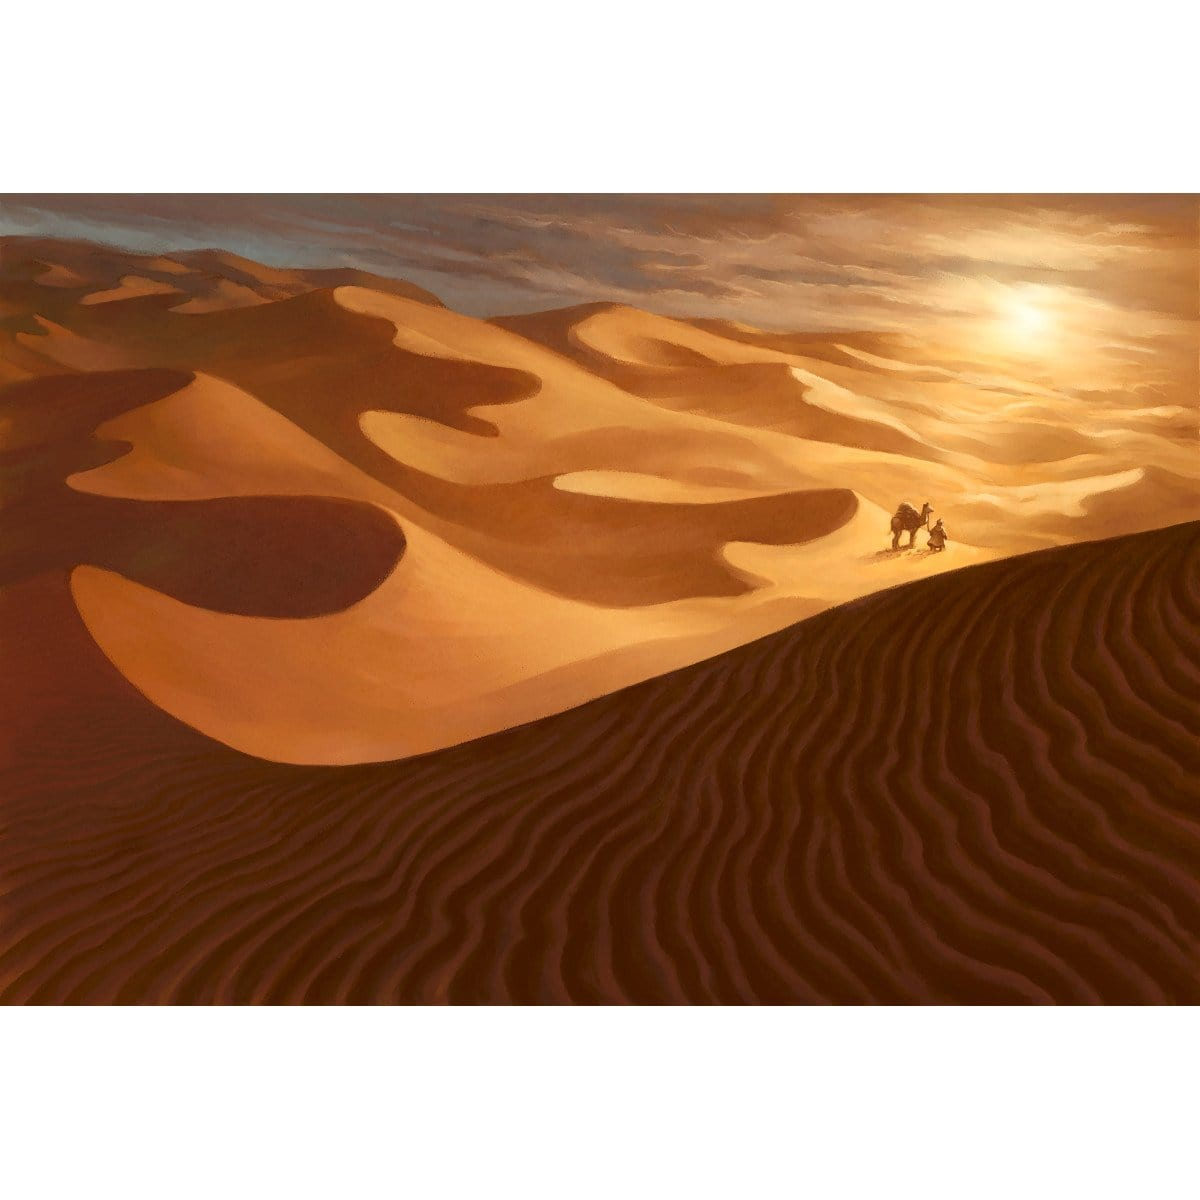 Sea of Sand Print - Print - Original Magic Art - Accessories for Magic the Gathering and other card games